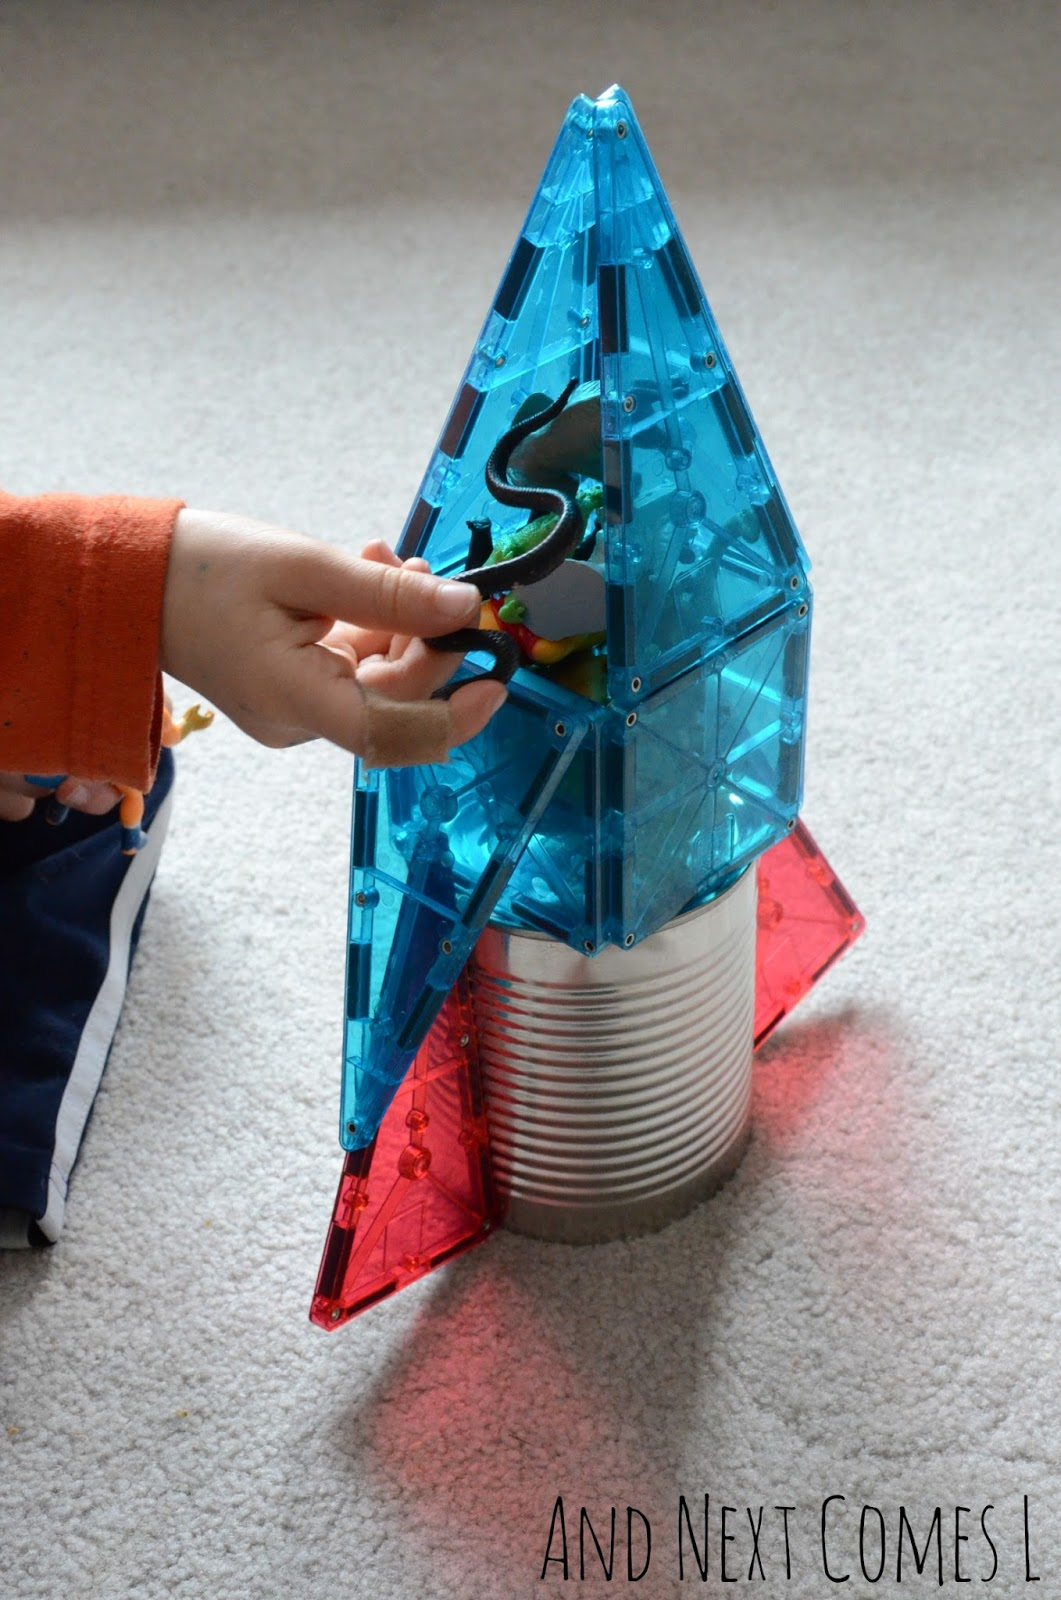 Loading the passengers into a tin can and Magna-Tiles rocket from And Next Comes L